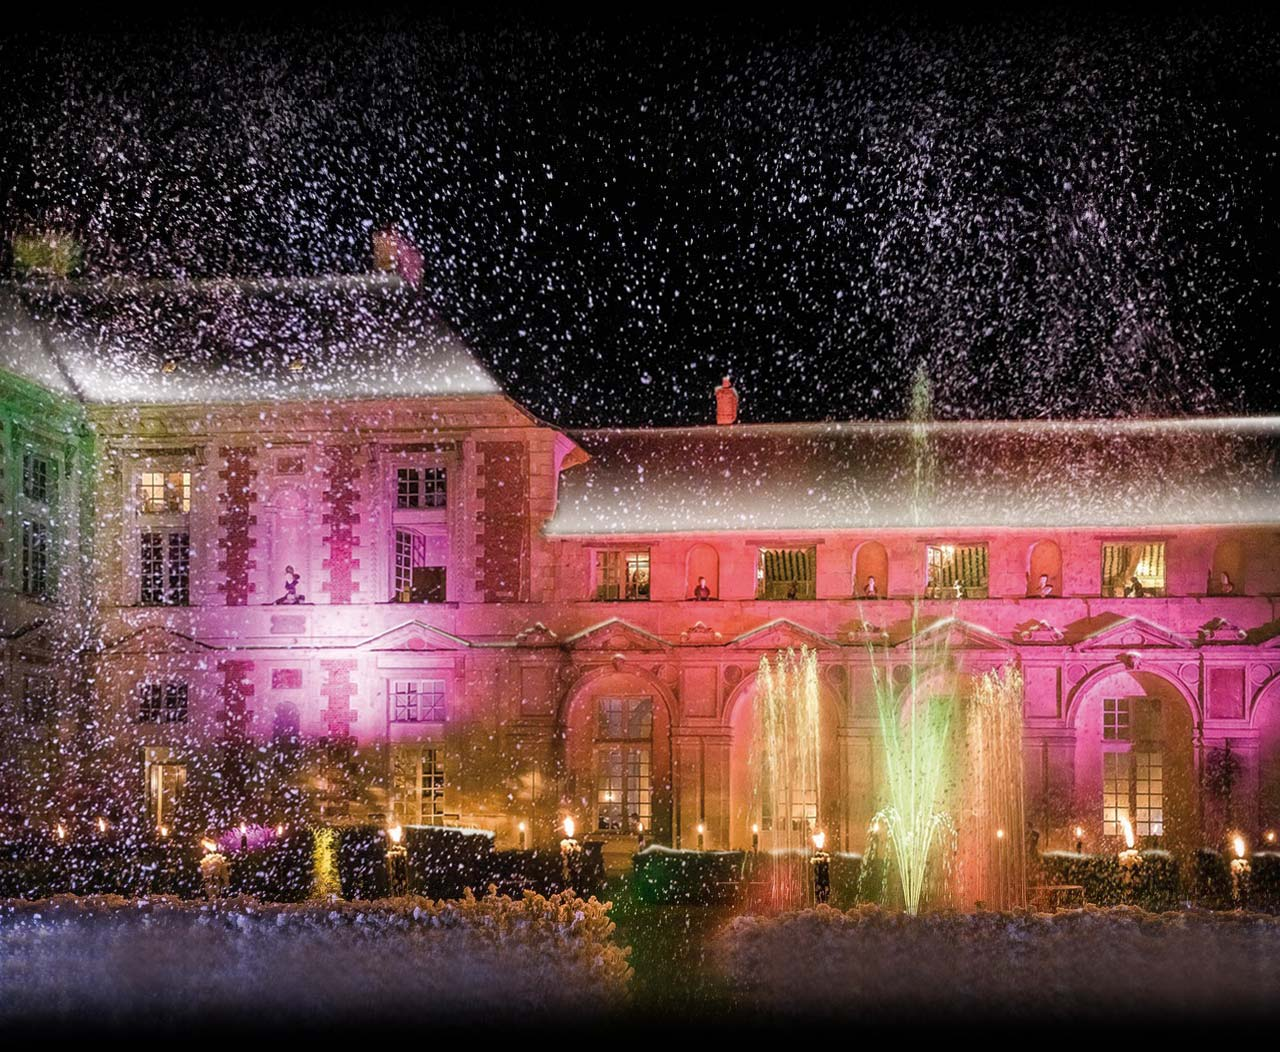 snow over your wedding at the chateau this winter